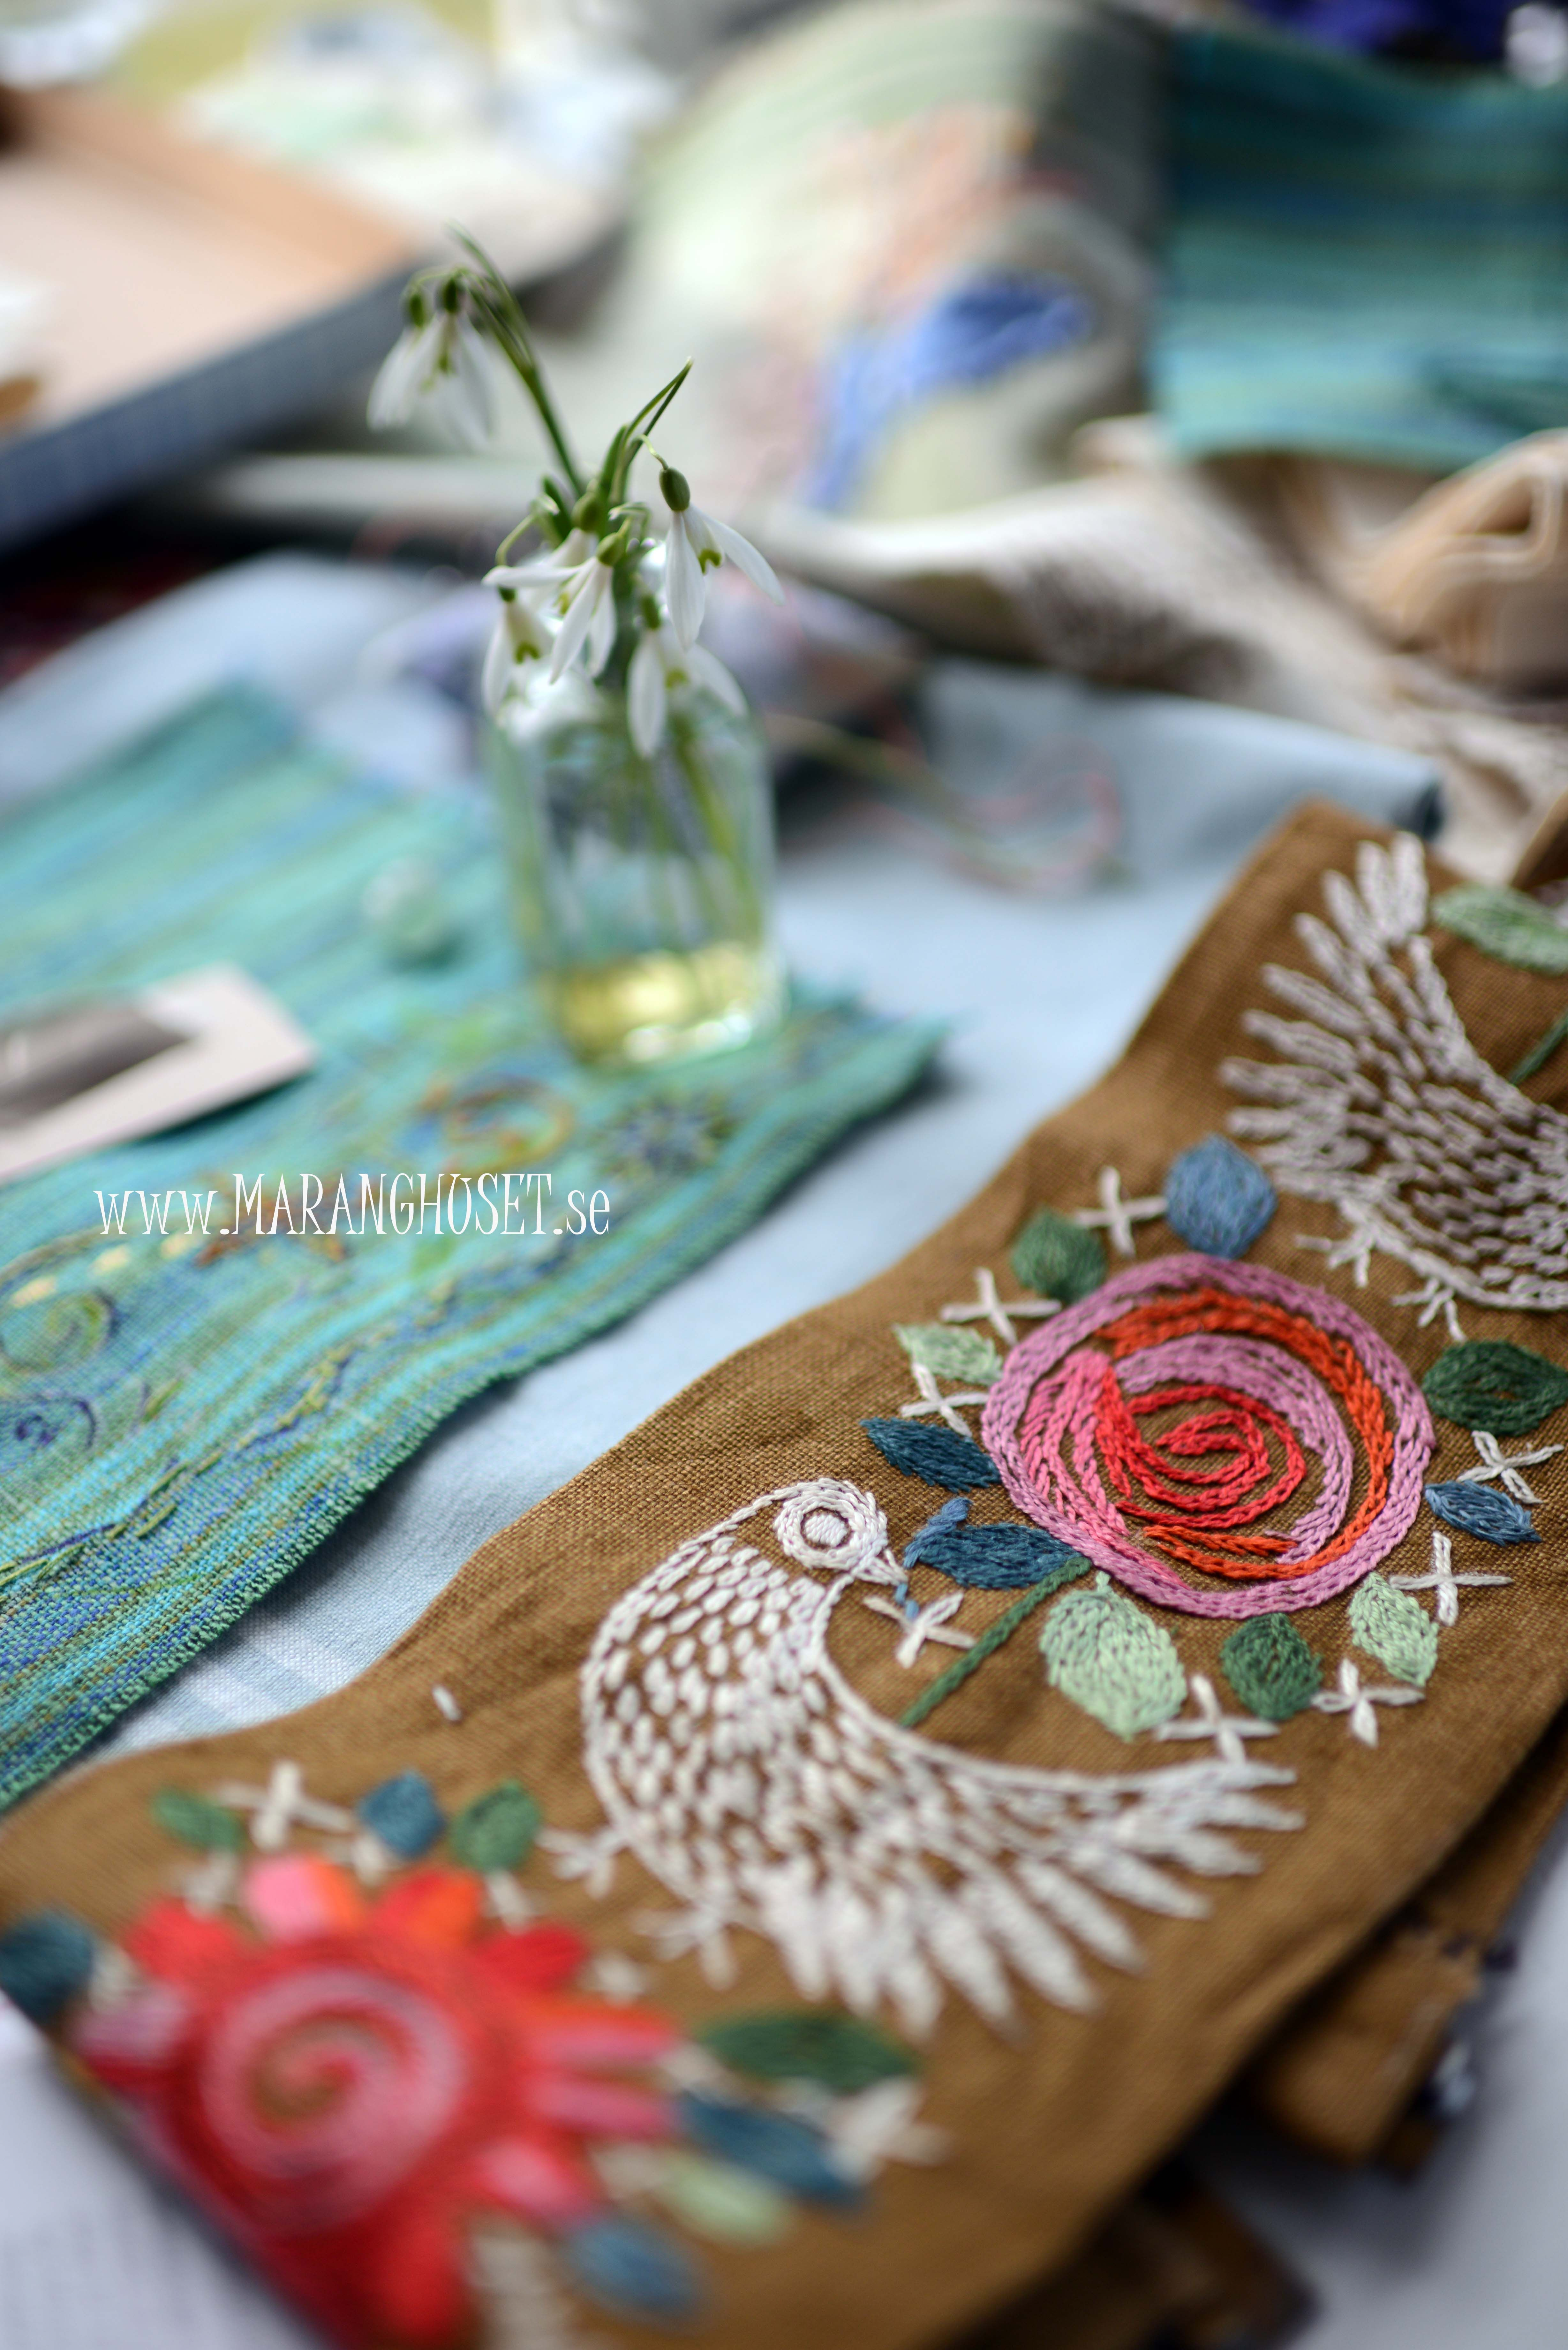 Vintage embroidery - Folklore, flower folk art design great for embellishing ethnic,gypsy or traditional mexican jackets ,skirts and dresses....cool in layered looks also for scandi,lagenlook fashions...mustard brown and aqua great contrast colour combo